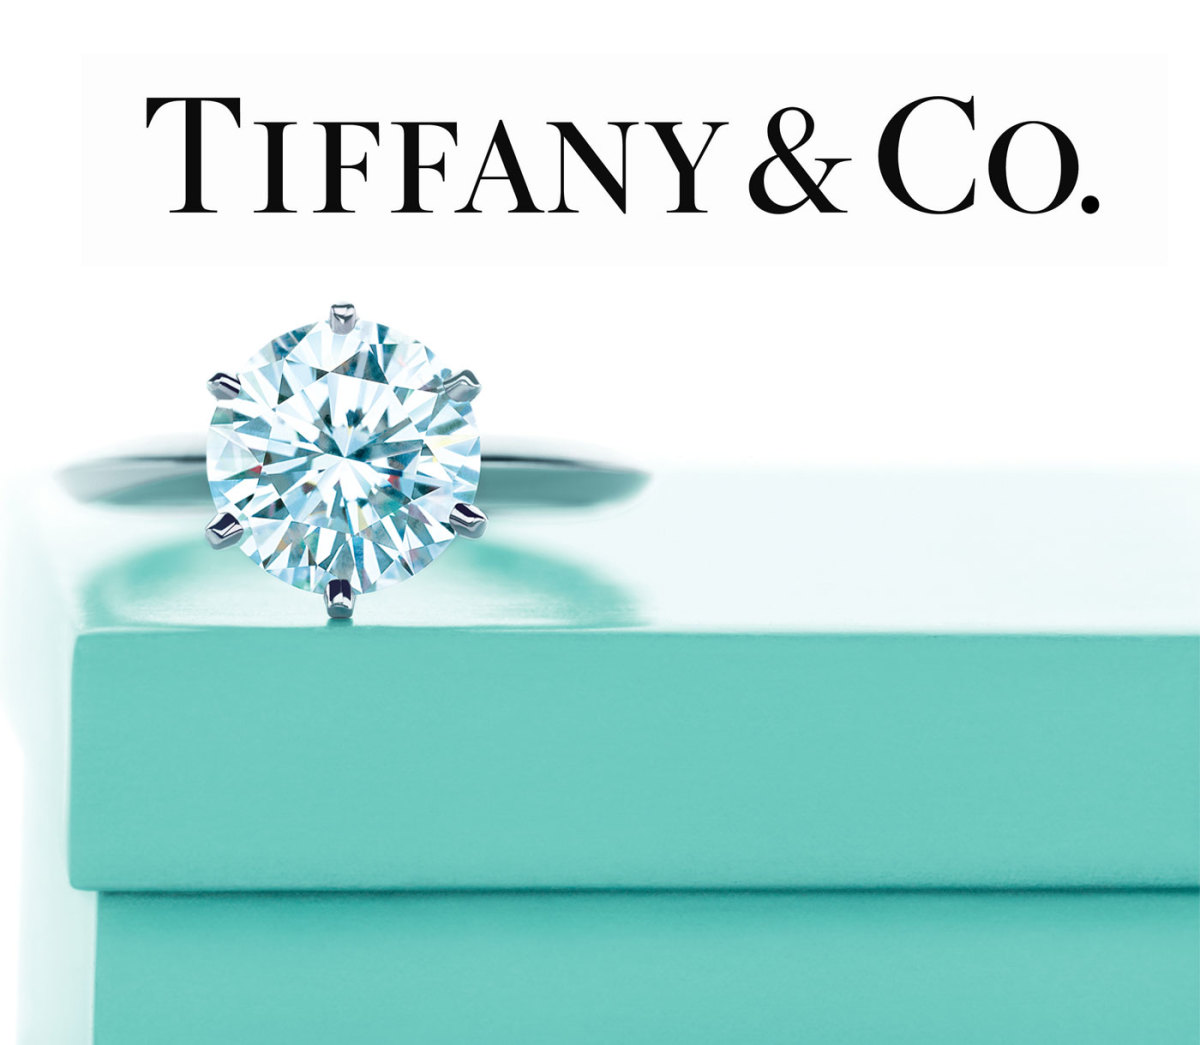 Tiffany & Co. Facts You May Not Know